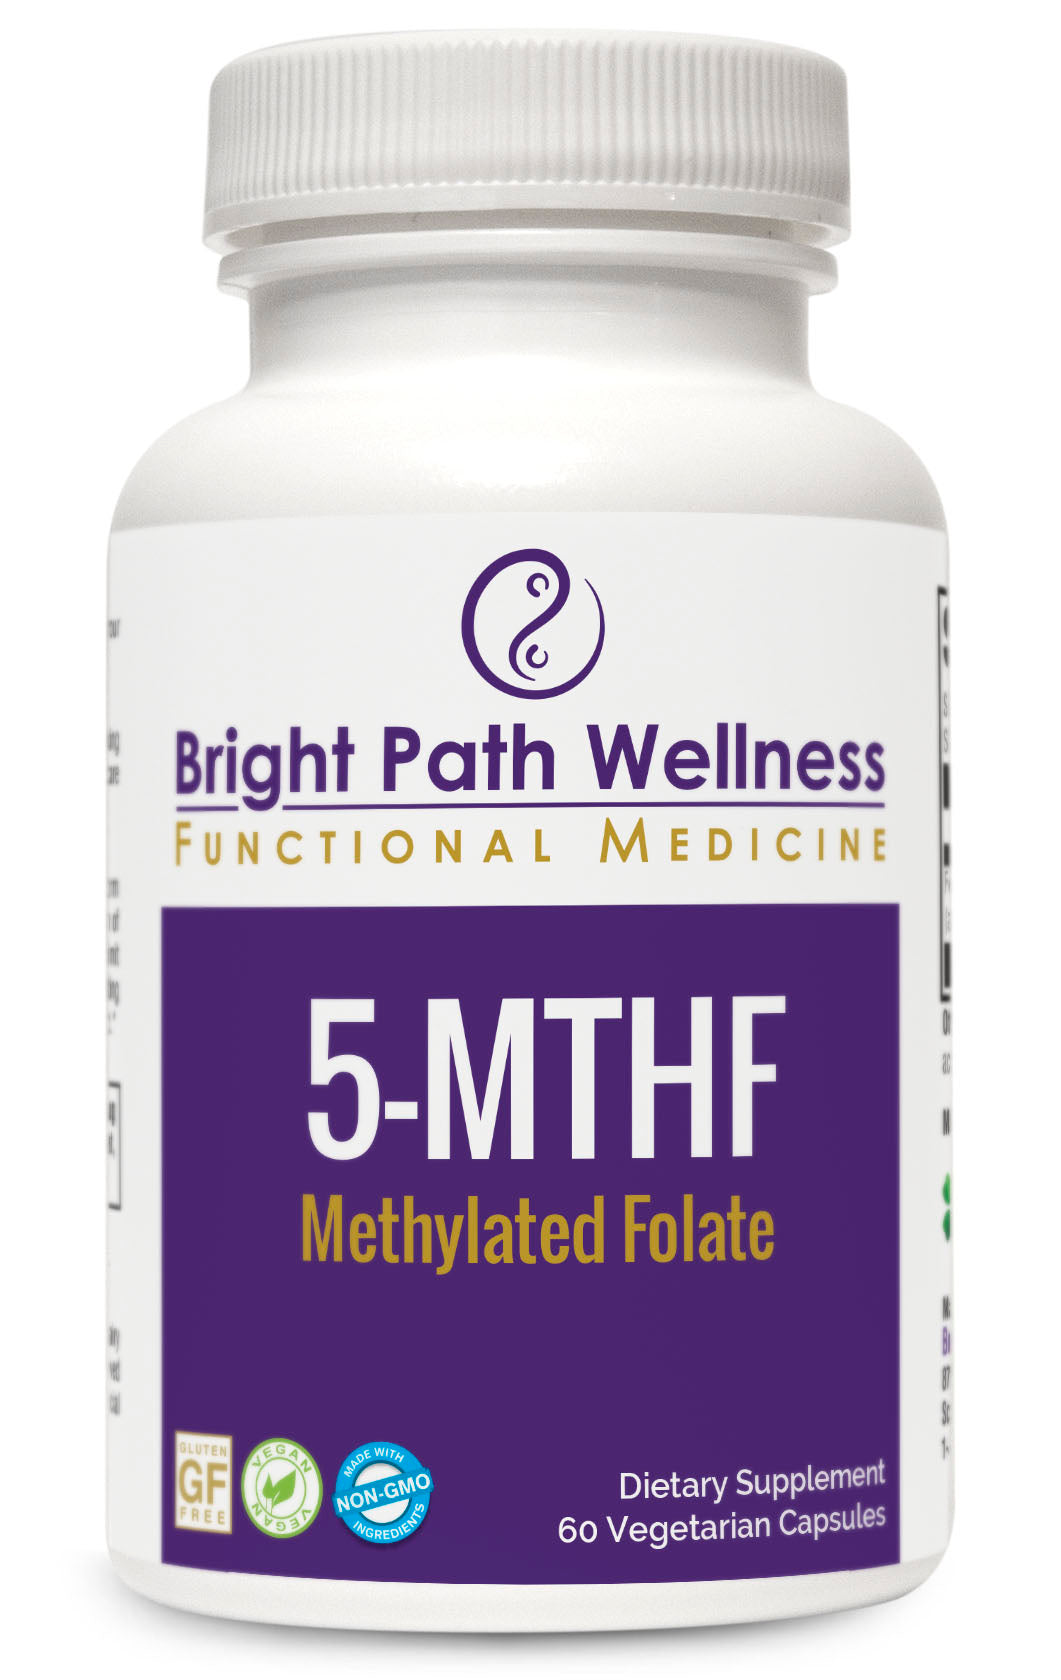 5-MTHF Methylated Folate